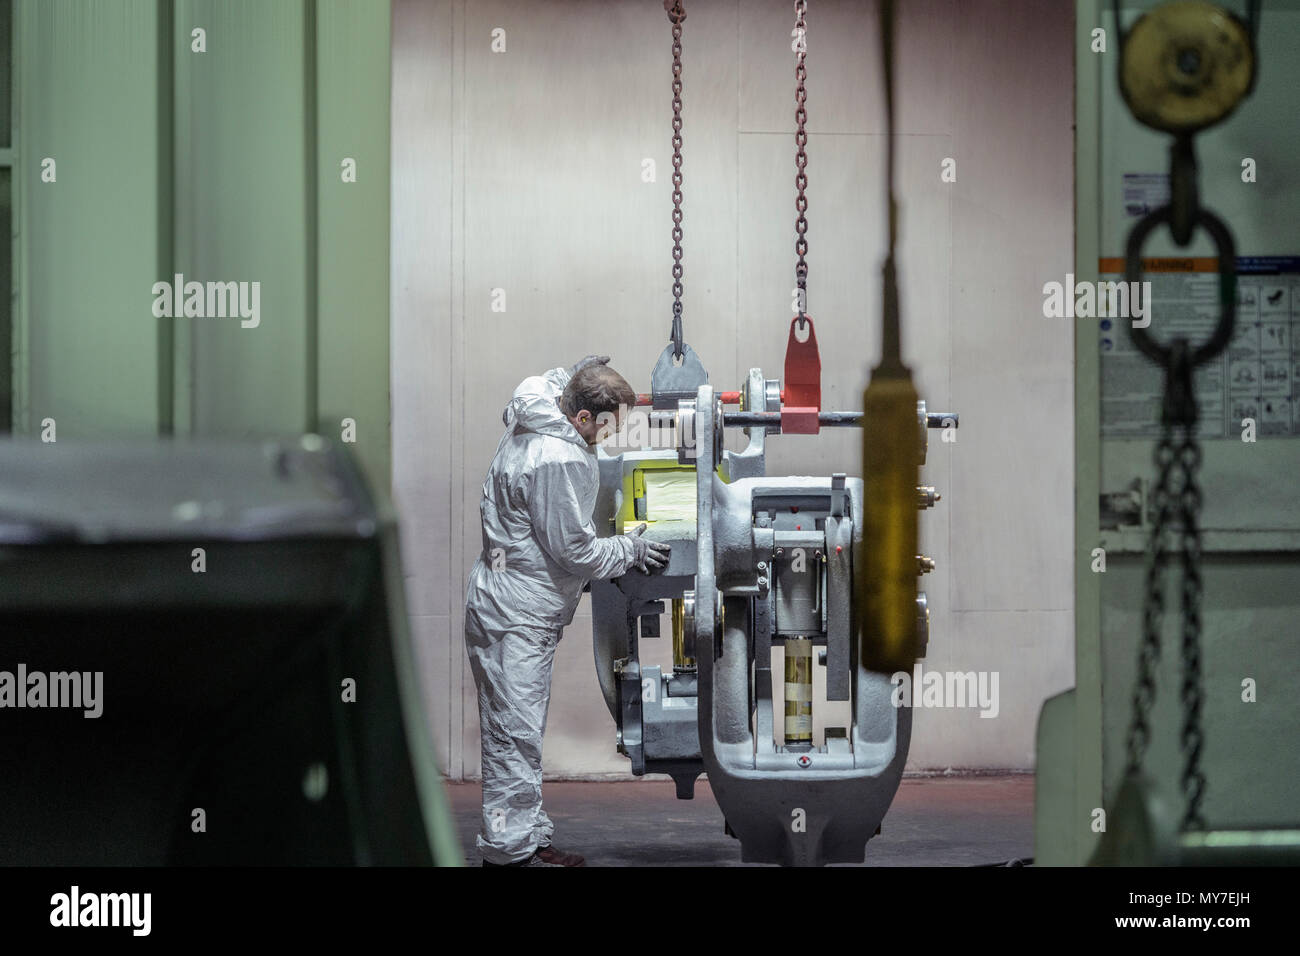 Paint sprayer inspecting product in engineering factory - Stock Image